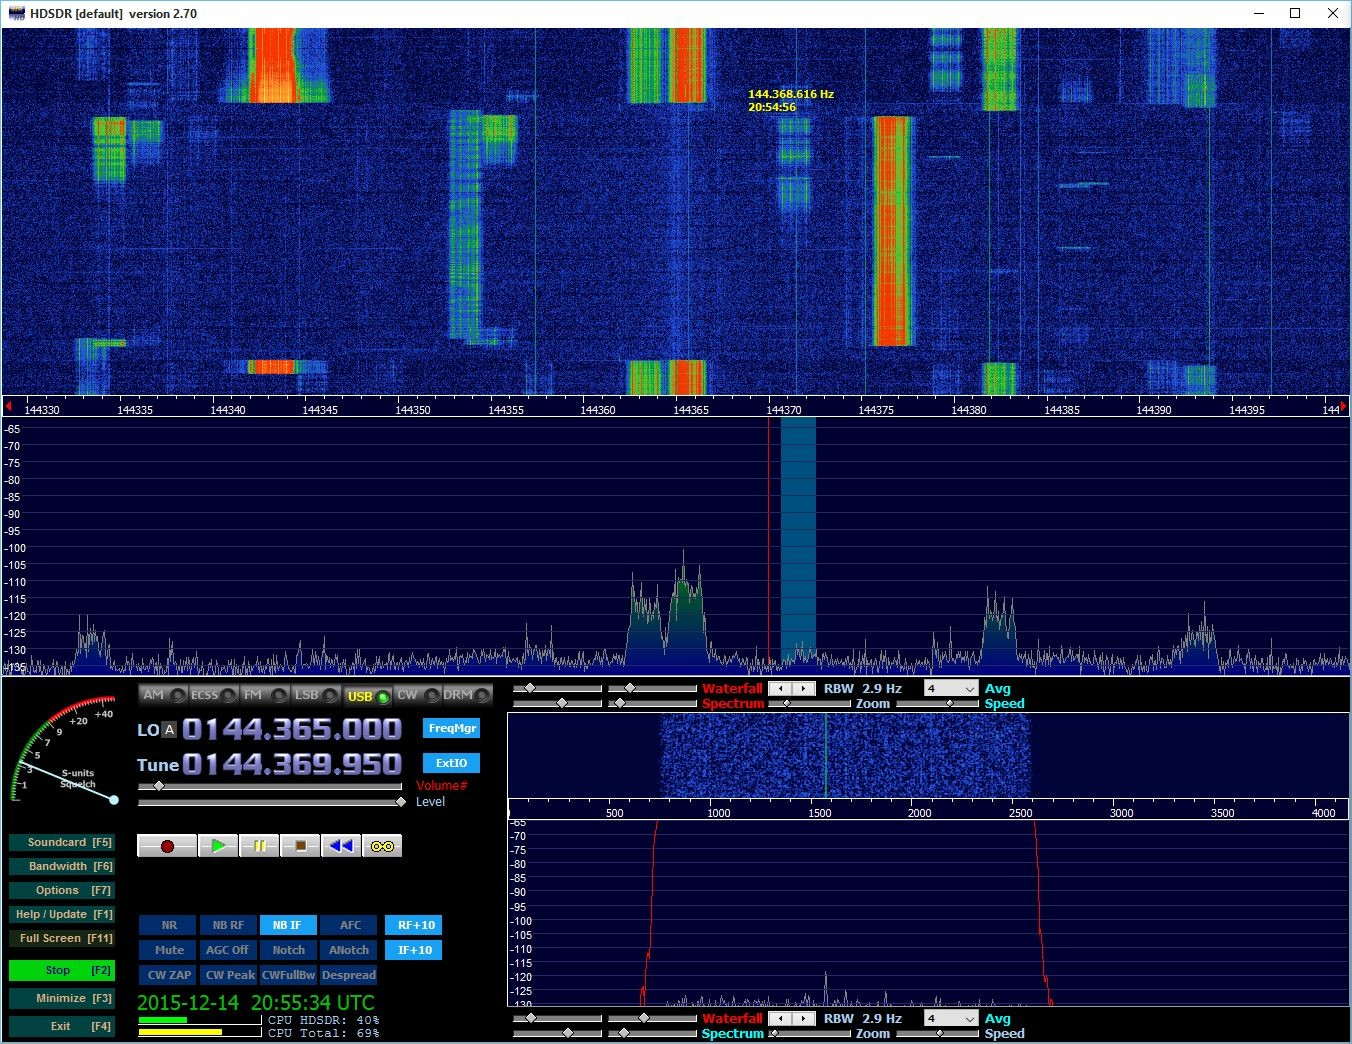 Lots of Bursts from EU6AF calling CQ on 144.370